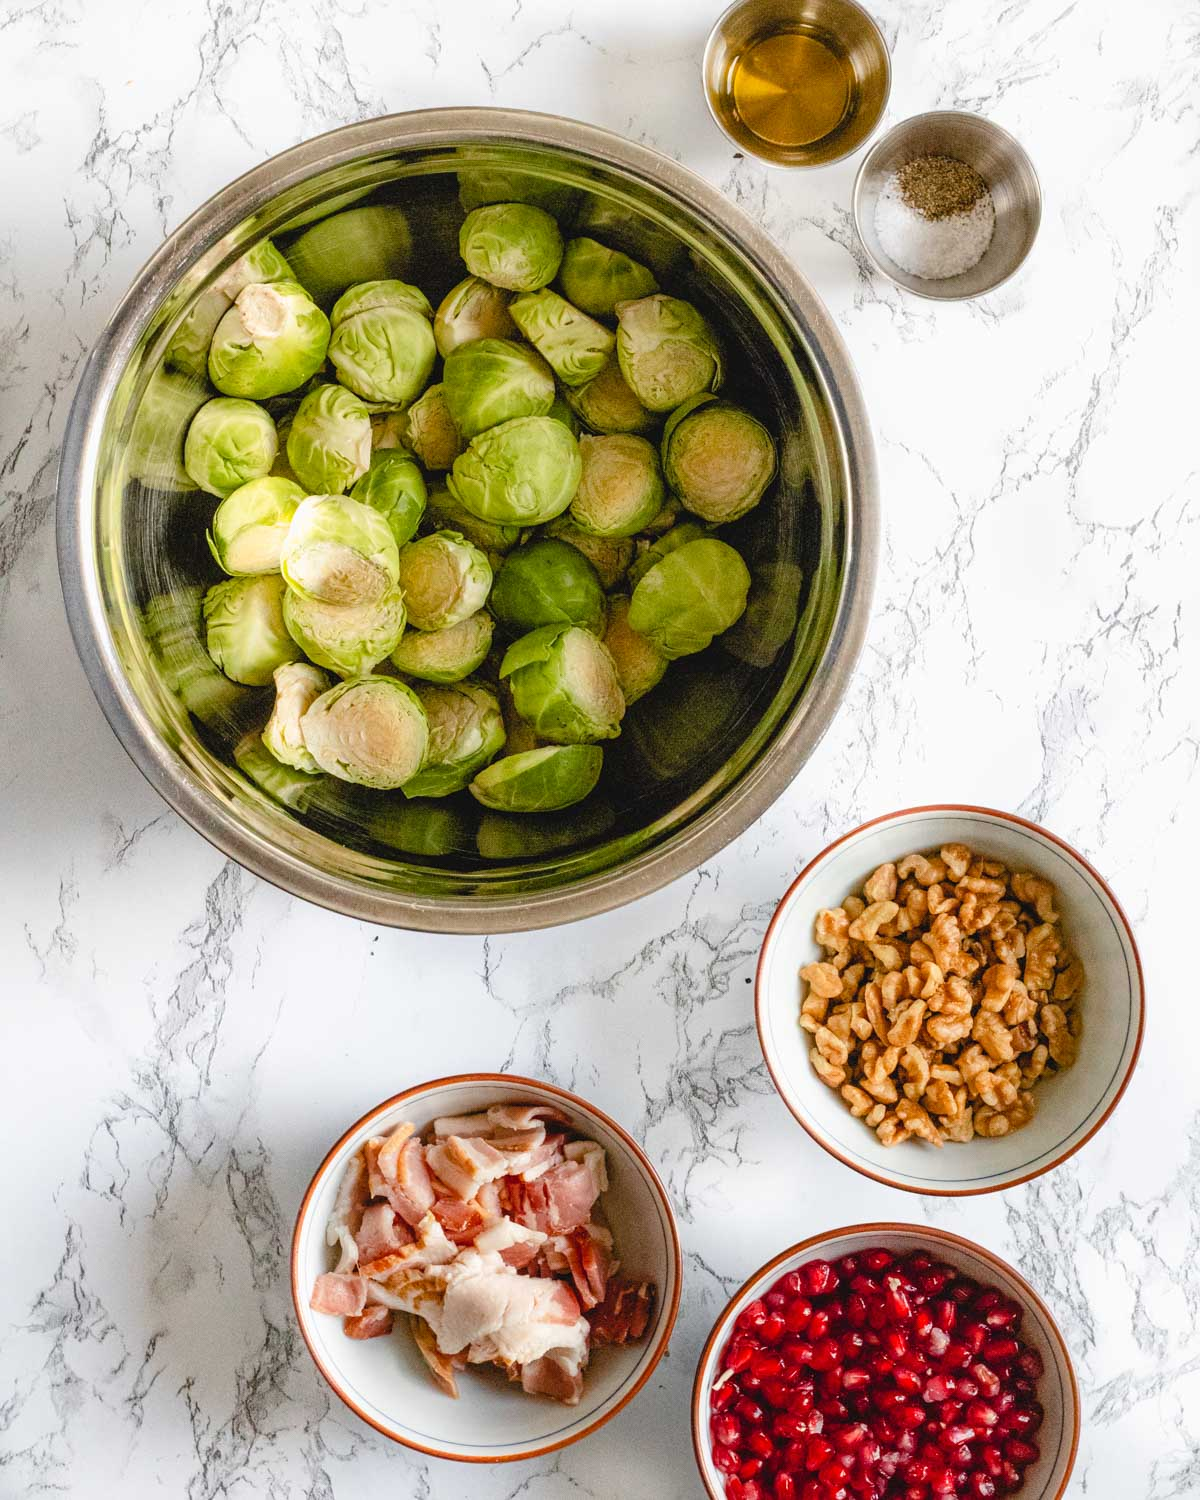 Brussels sprouts ingredients: Brussels, walnuts, bacon, pomegranates, oil, salt and pepper.